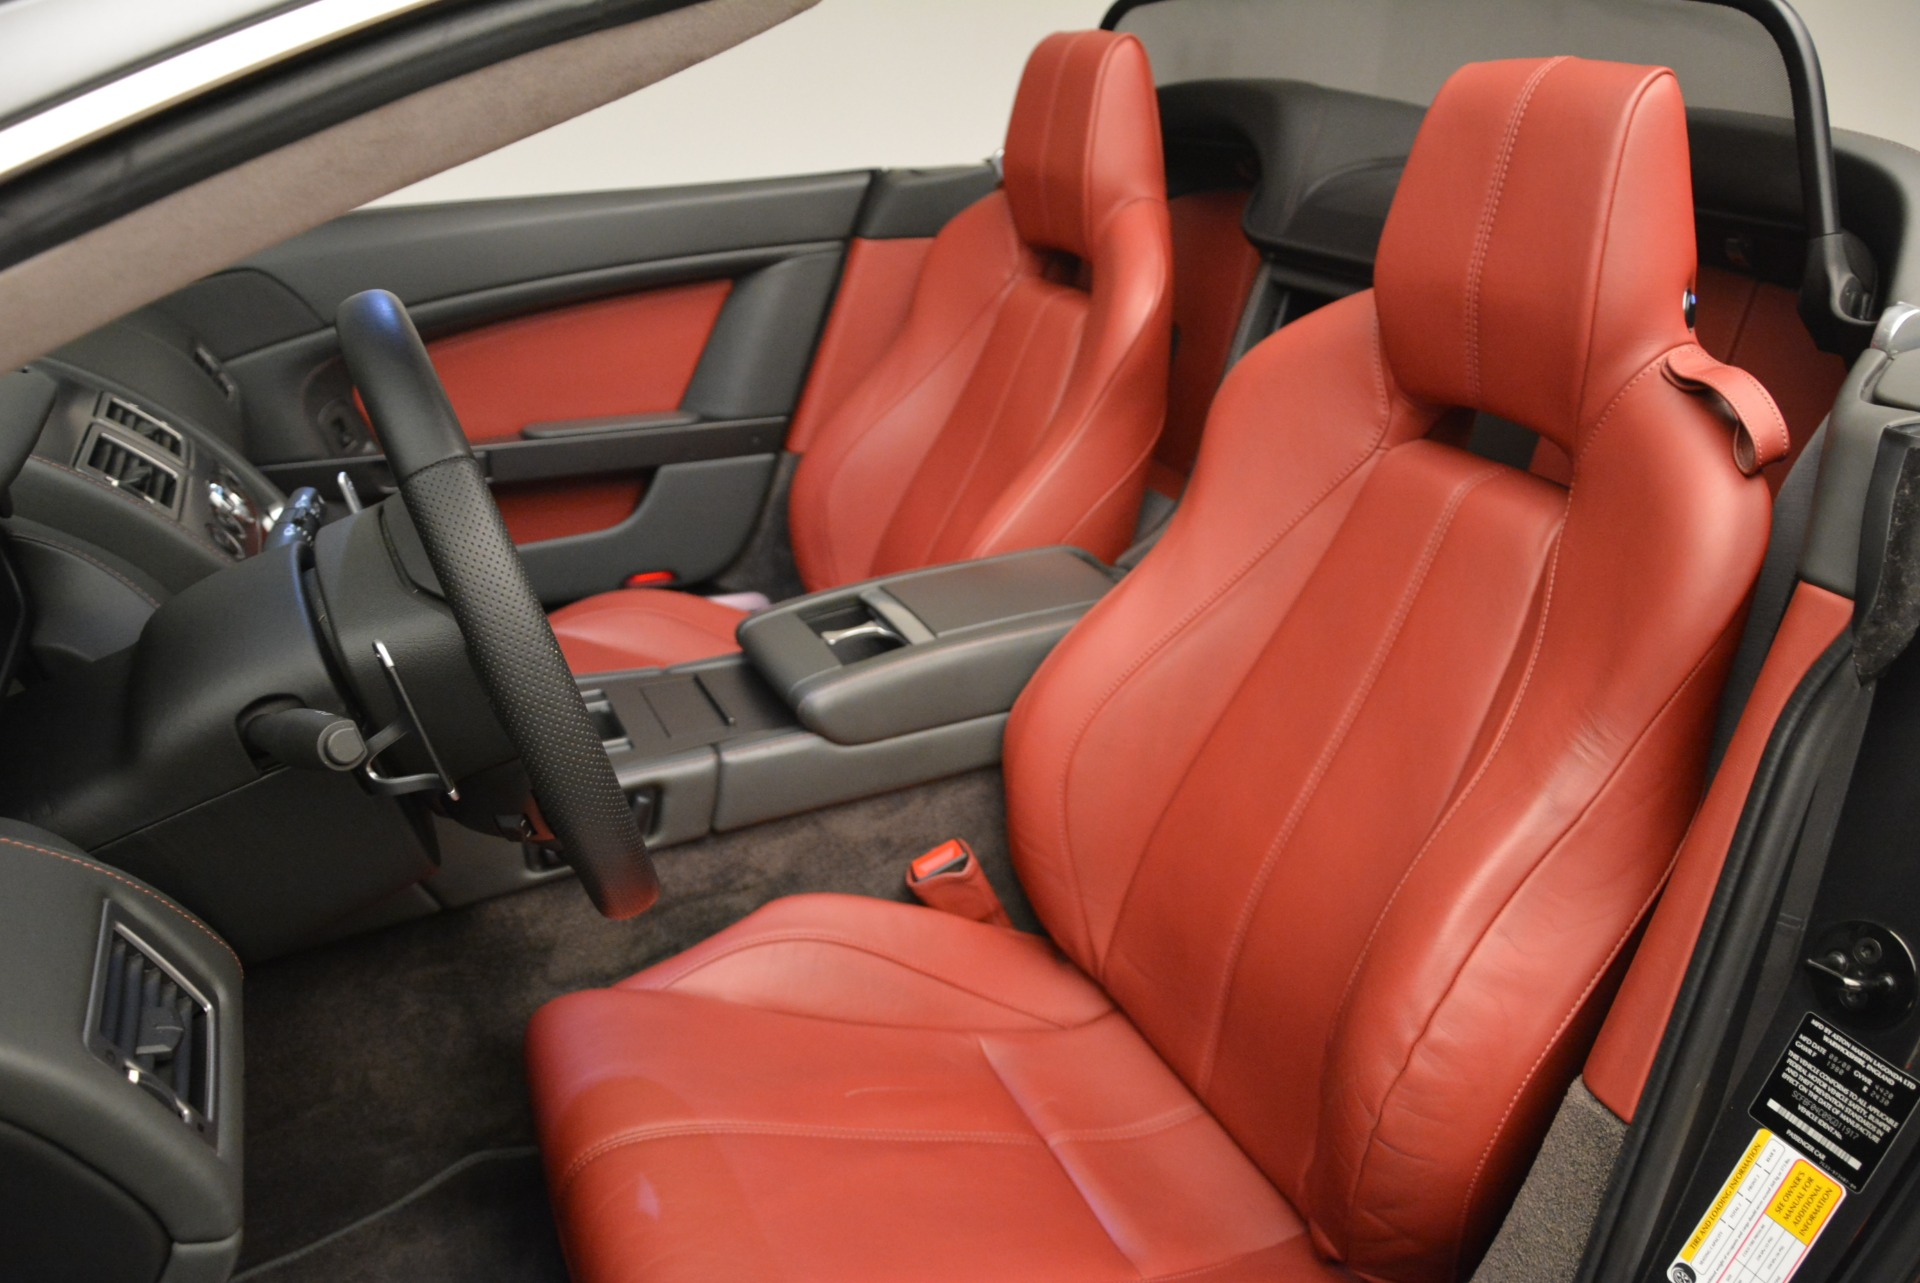 Used 2009 Aston Martin V8 Vantage Roadster For Sale In Greenwich, CT 2123_p28